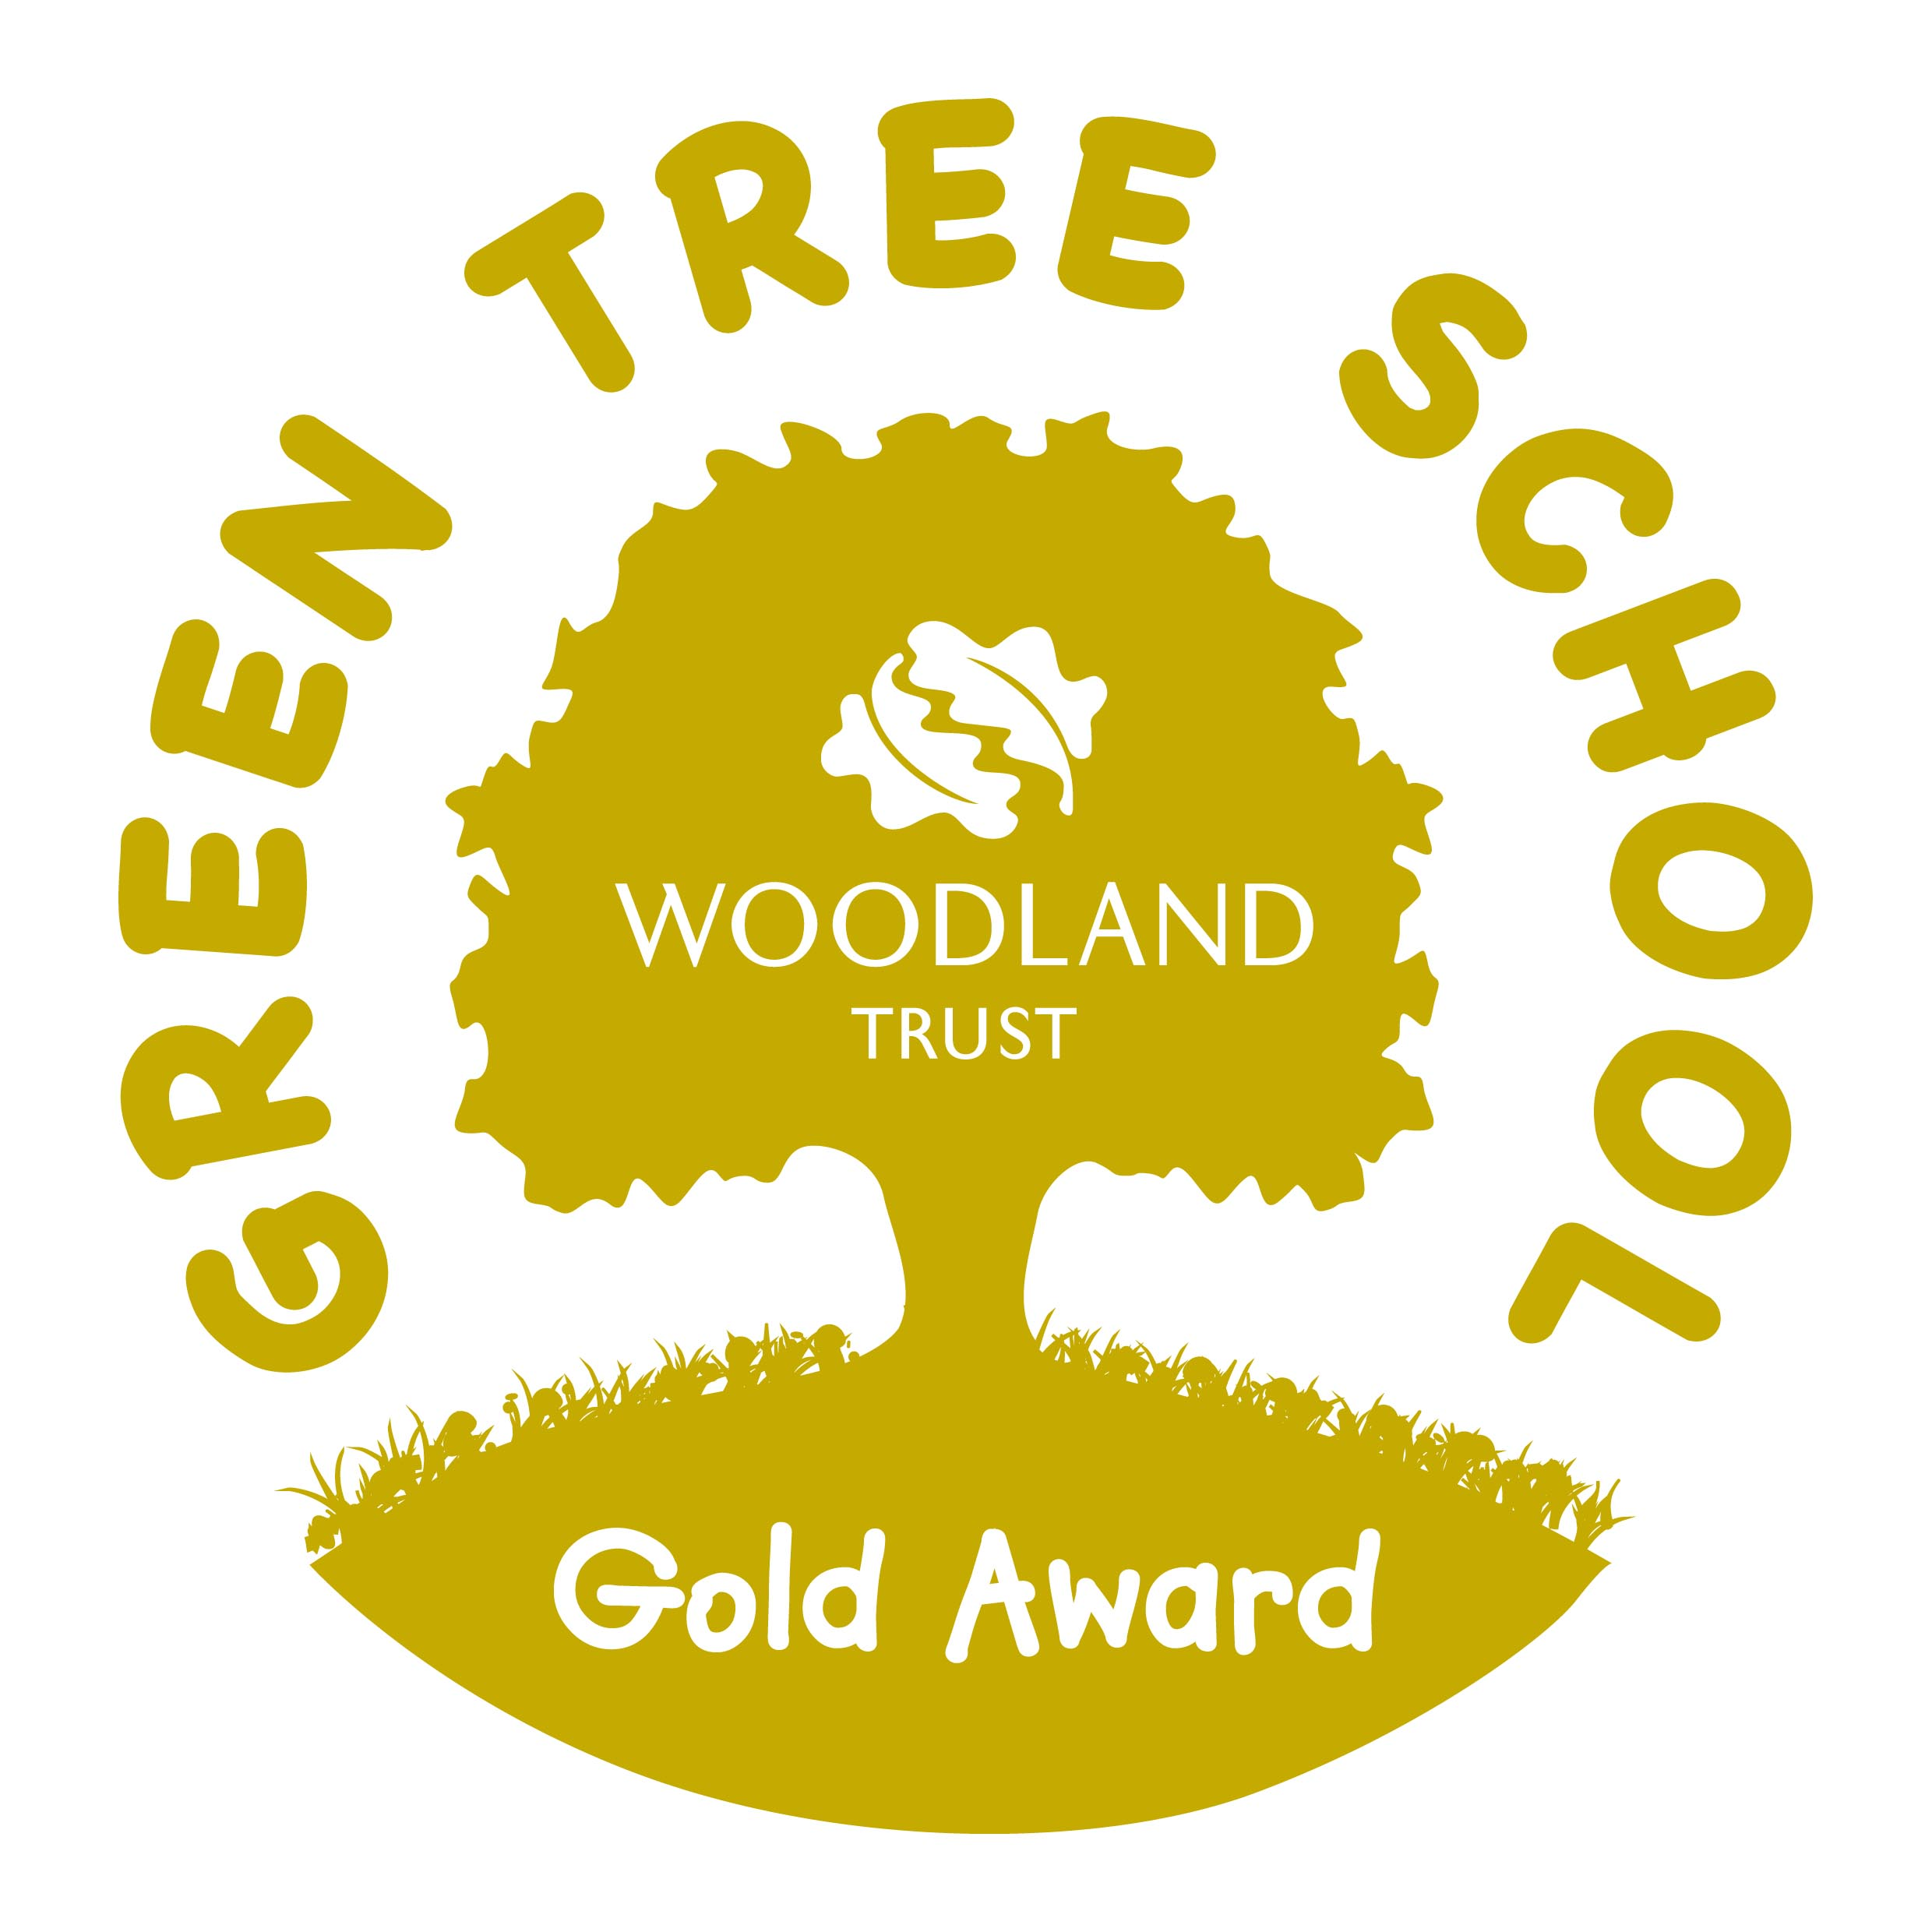 Gold award tree scheme logo